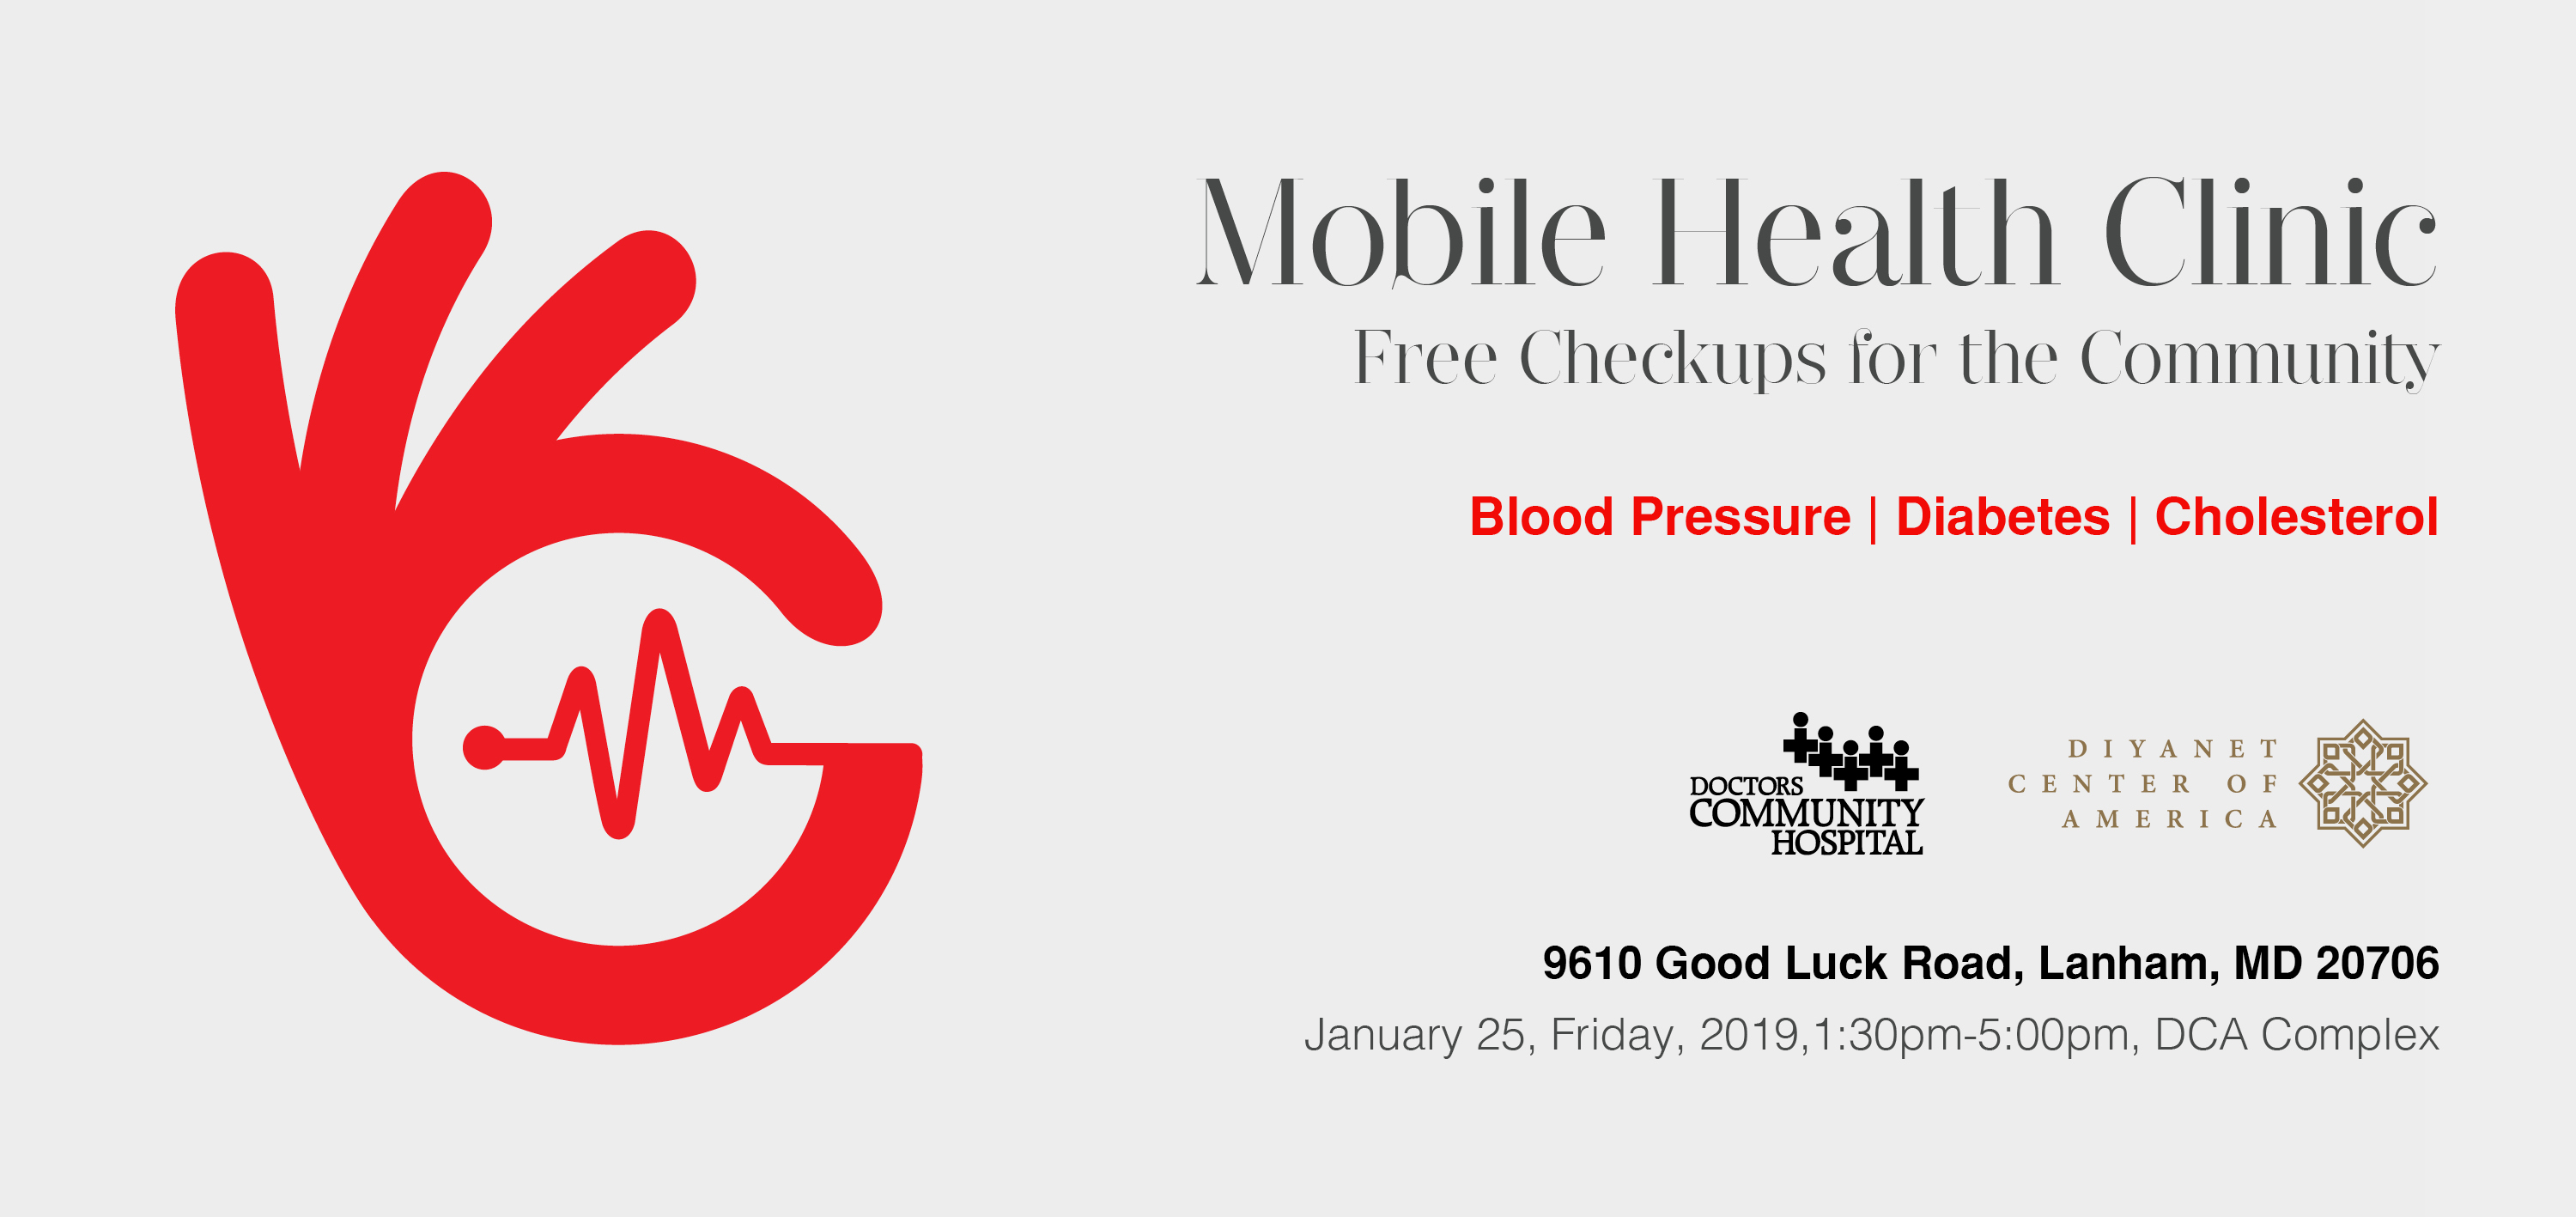 Mobile Health Clinic - Free Checkups for the Community